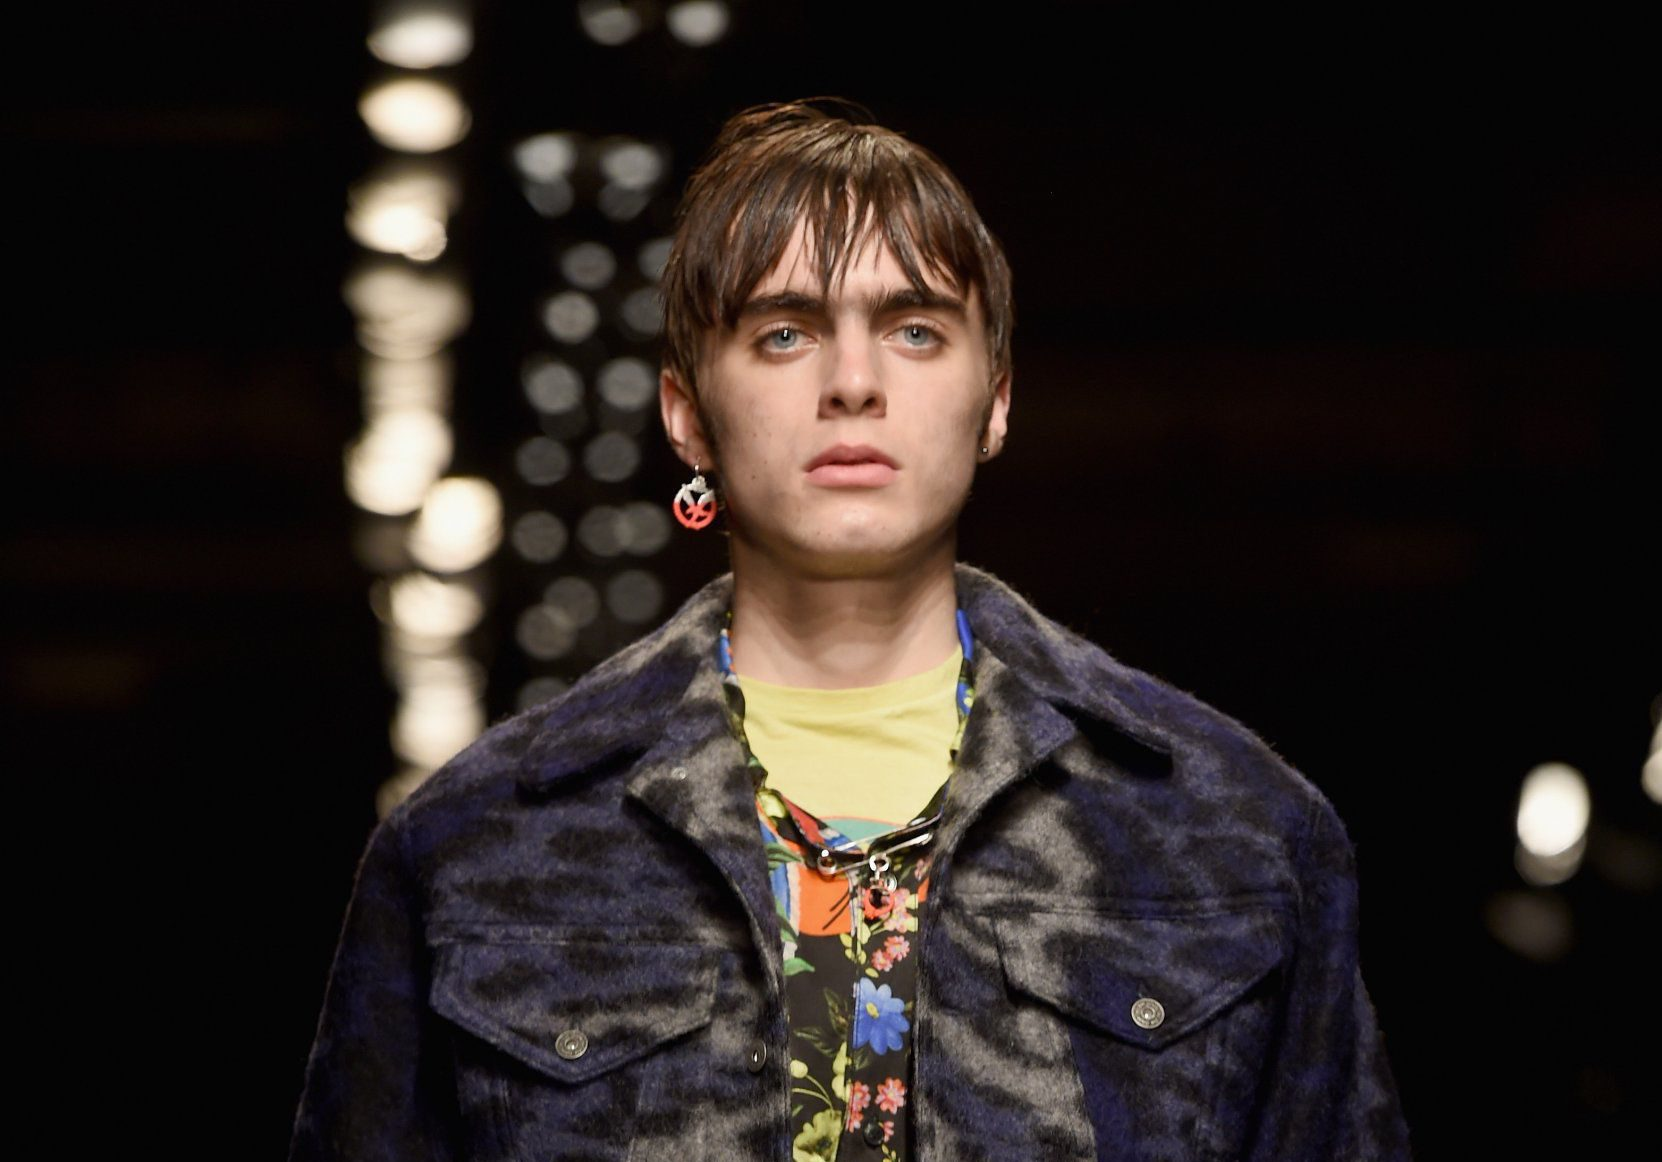 Here are some things you may have missed at London Fashion Week Men's